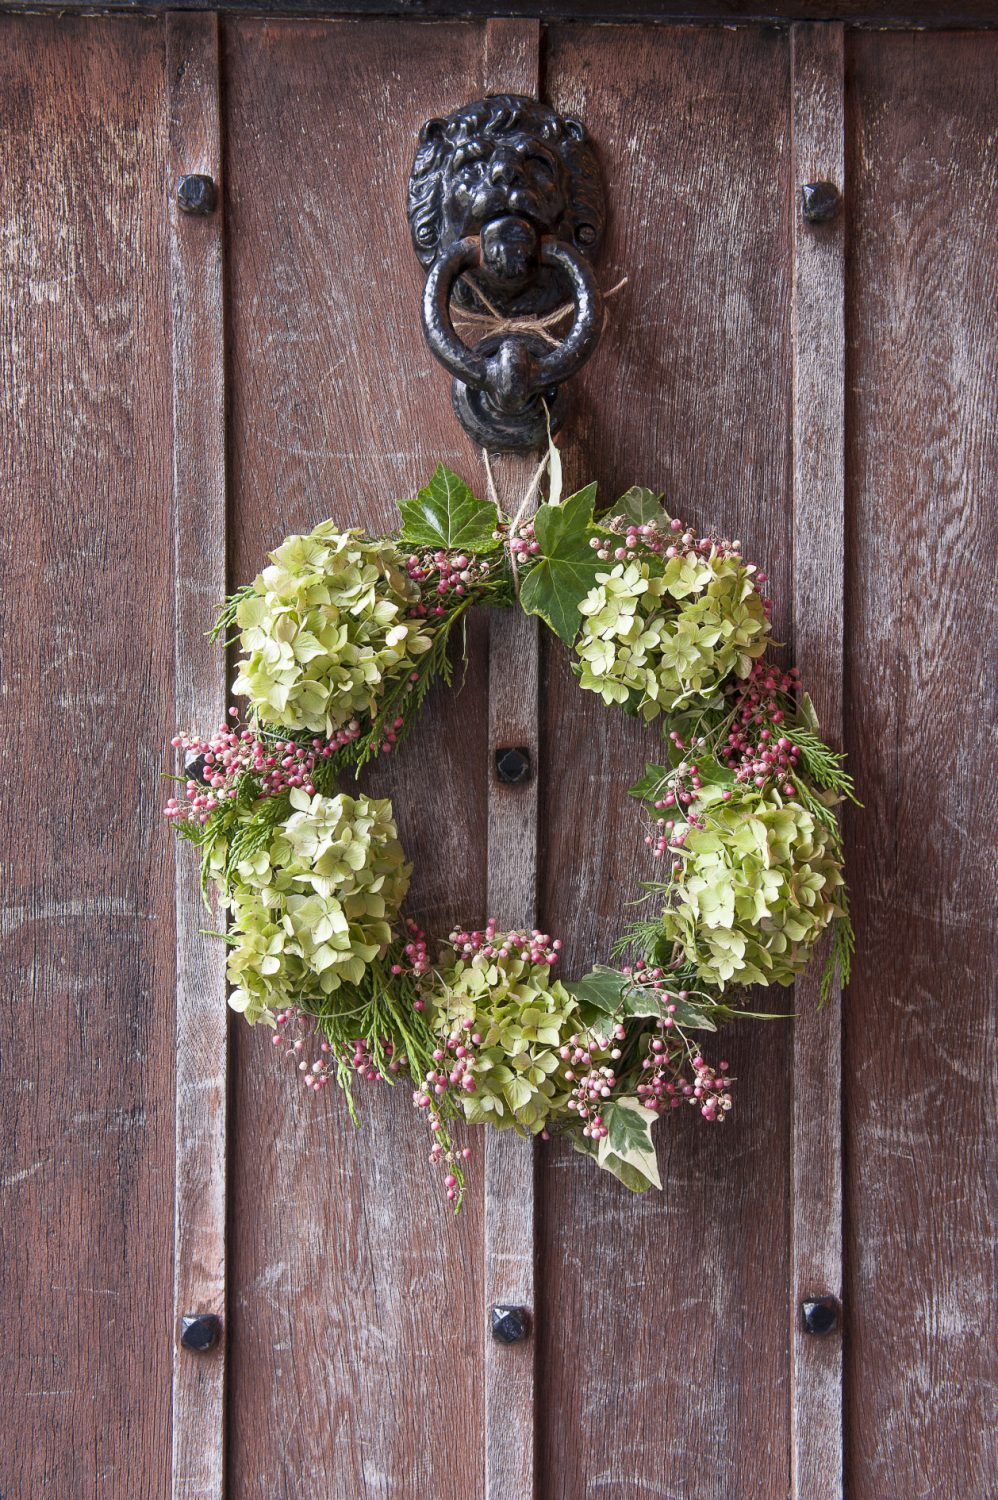 The pink peppercorn and hydrangea wreath greeting visitors to Alli's home was created by Sophie Hill from Flowers at the Stables